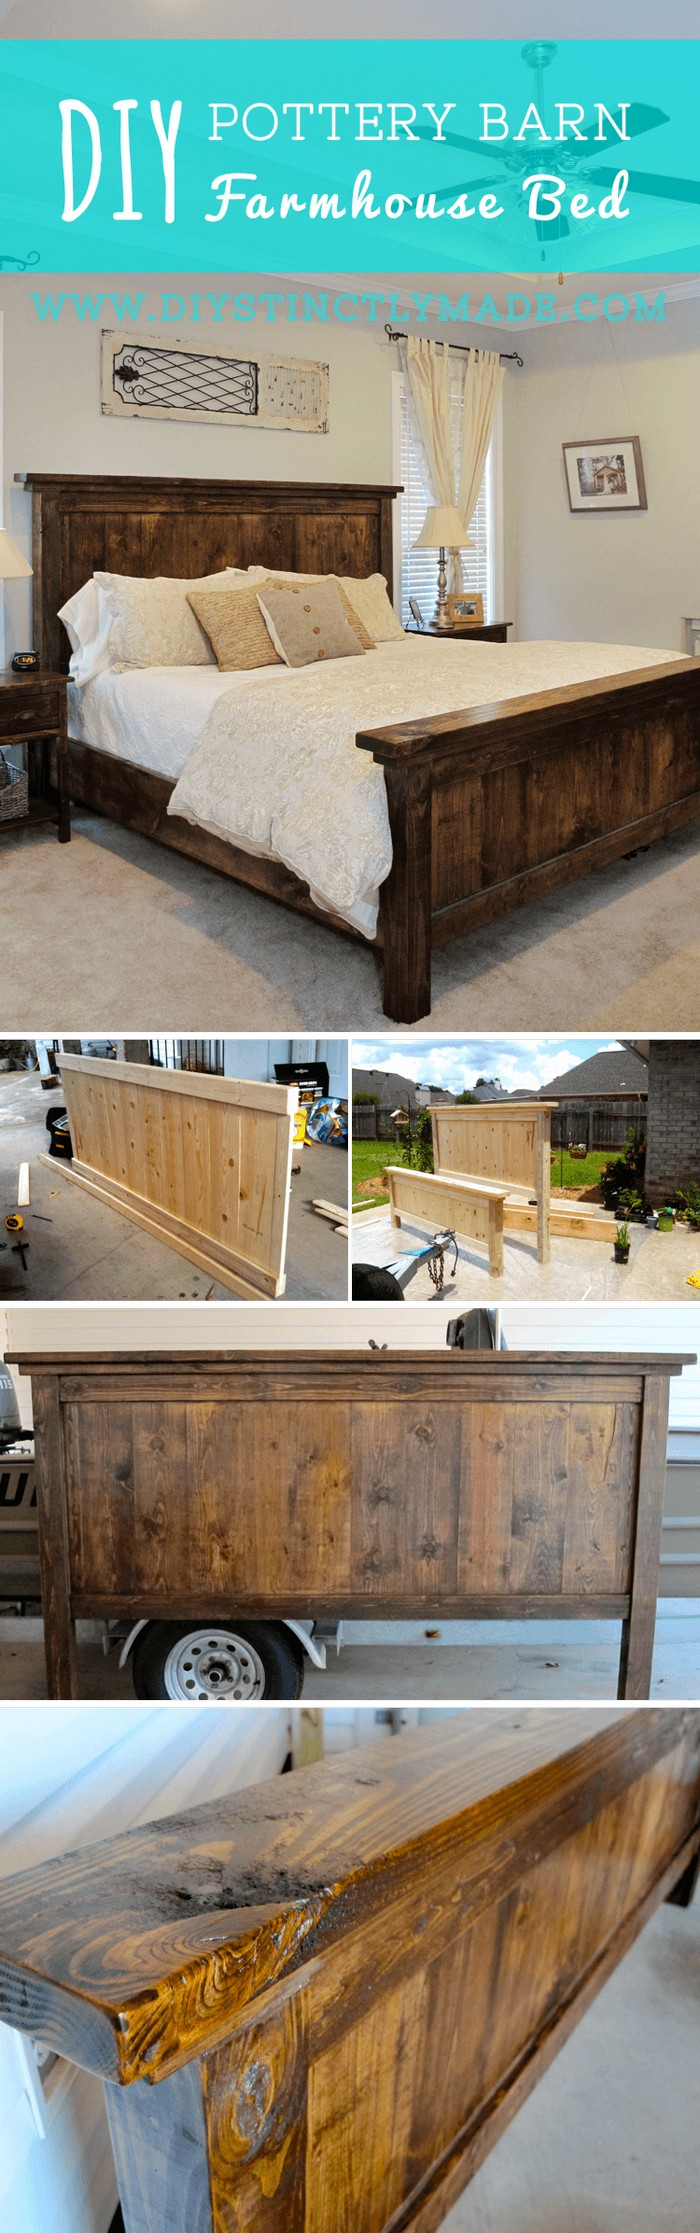 DIY Pottery Barn Farmhouse Bed - diy bed frame - DIY Bed Plans -diy bed